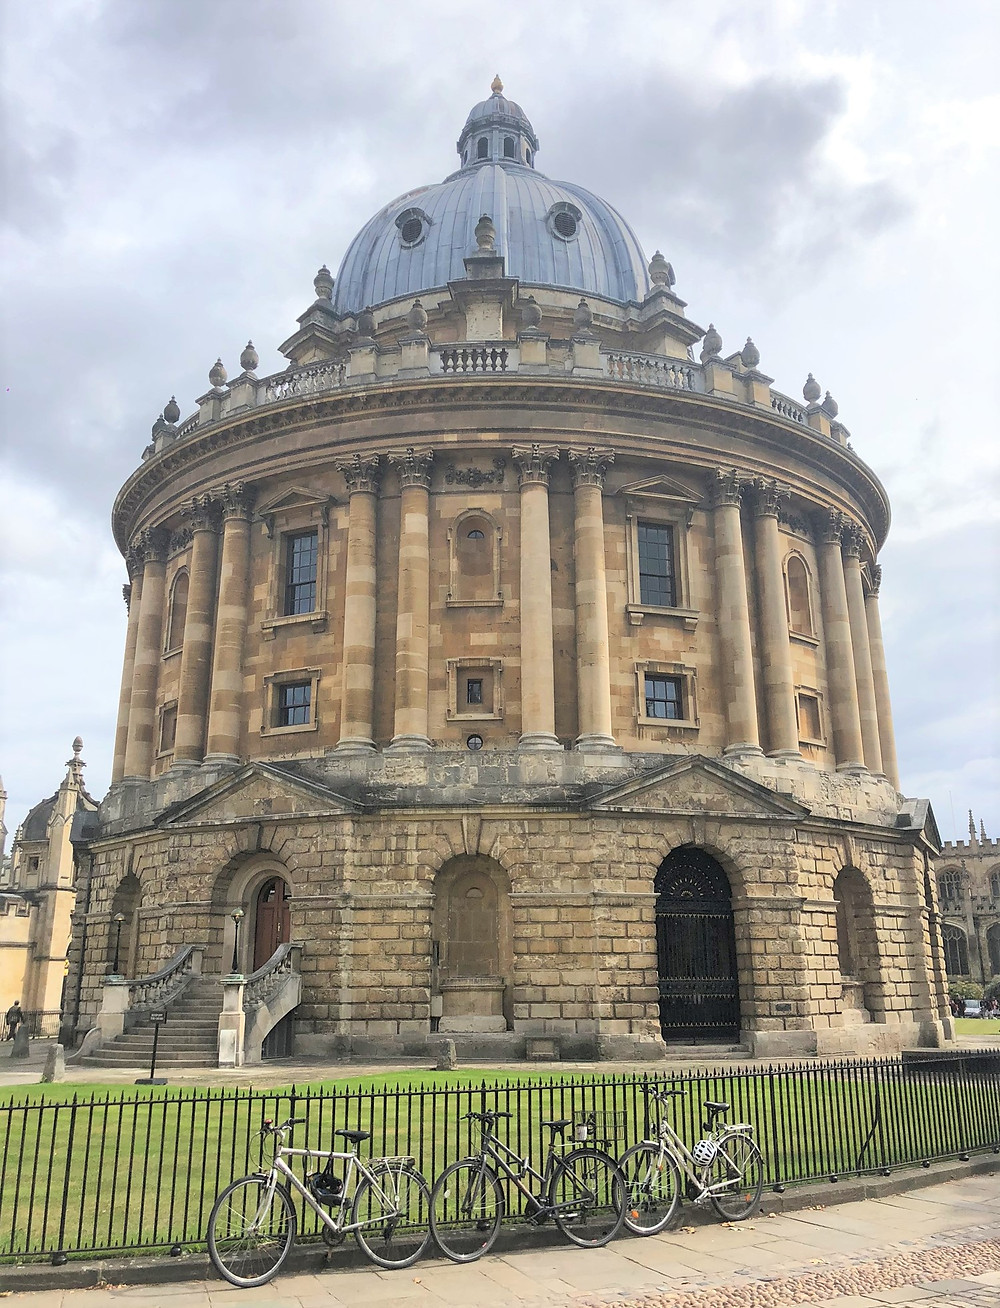 Radcliff Camera an iconic sight in Oxford, England